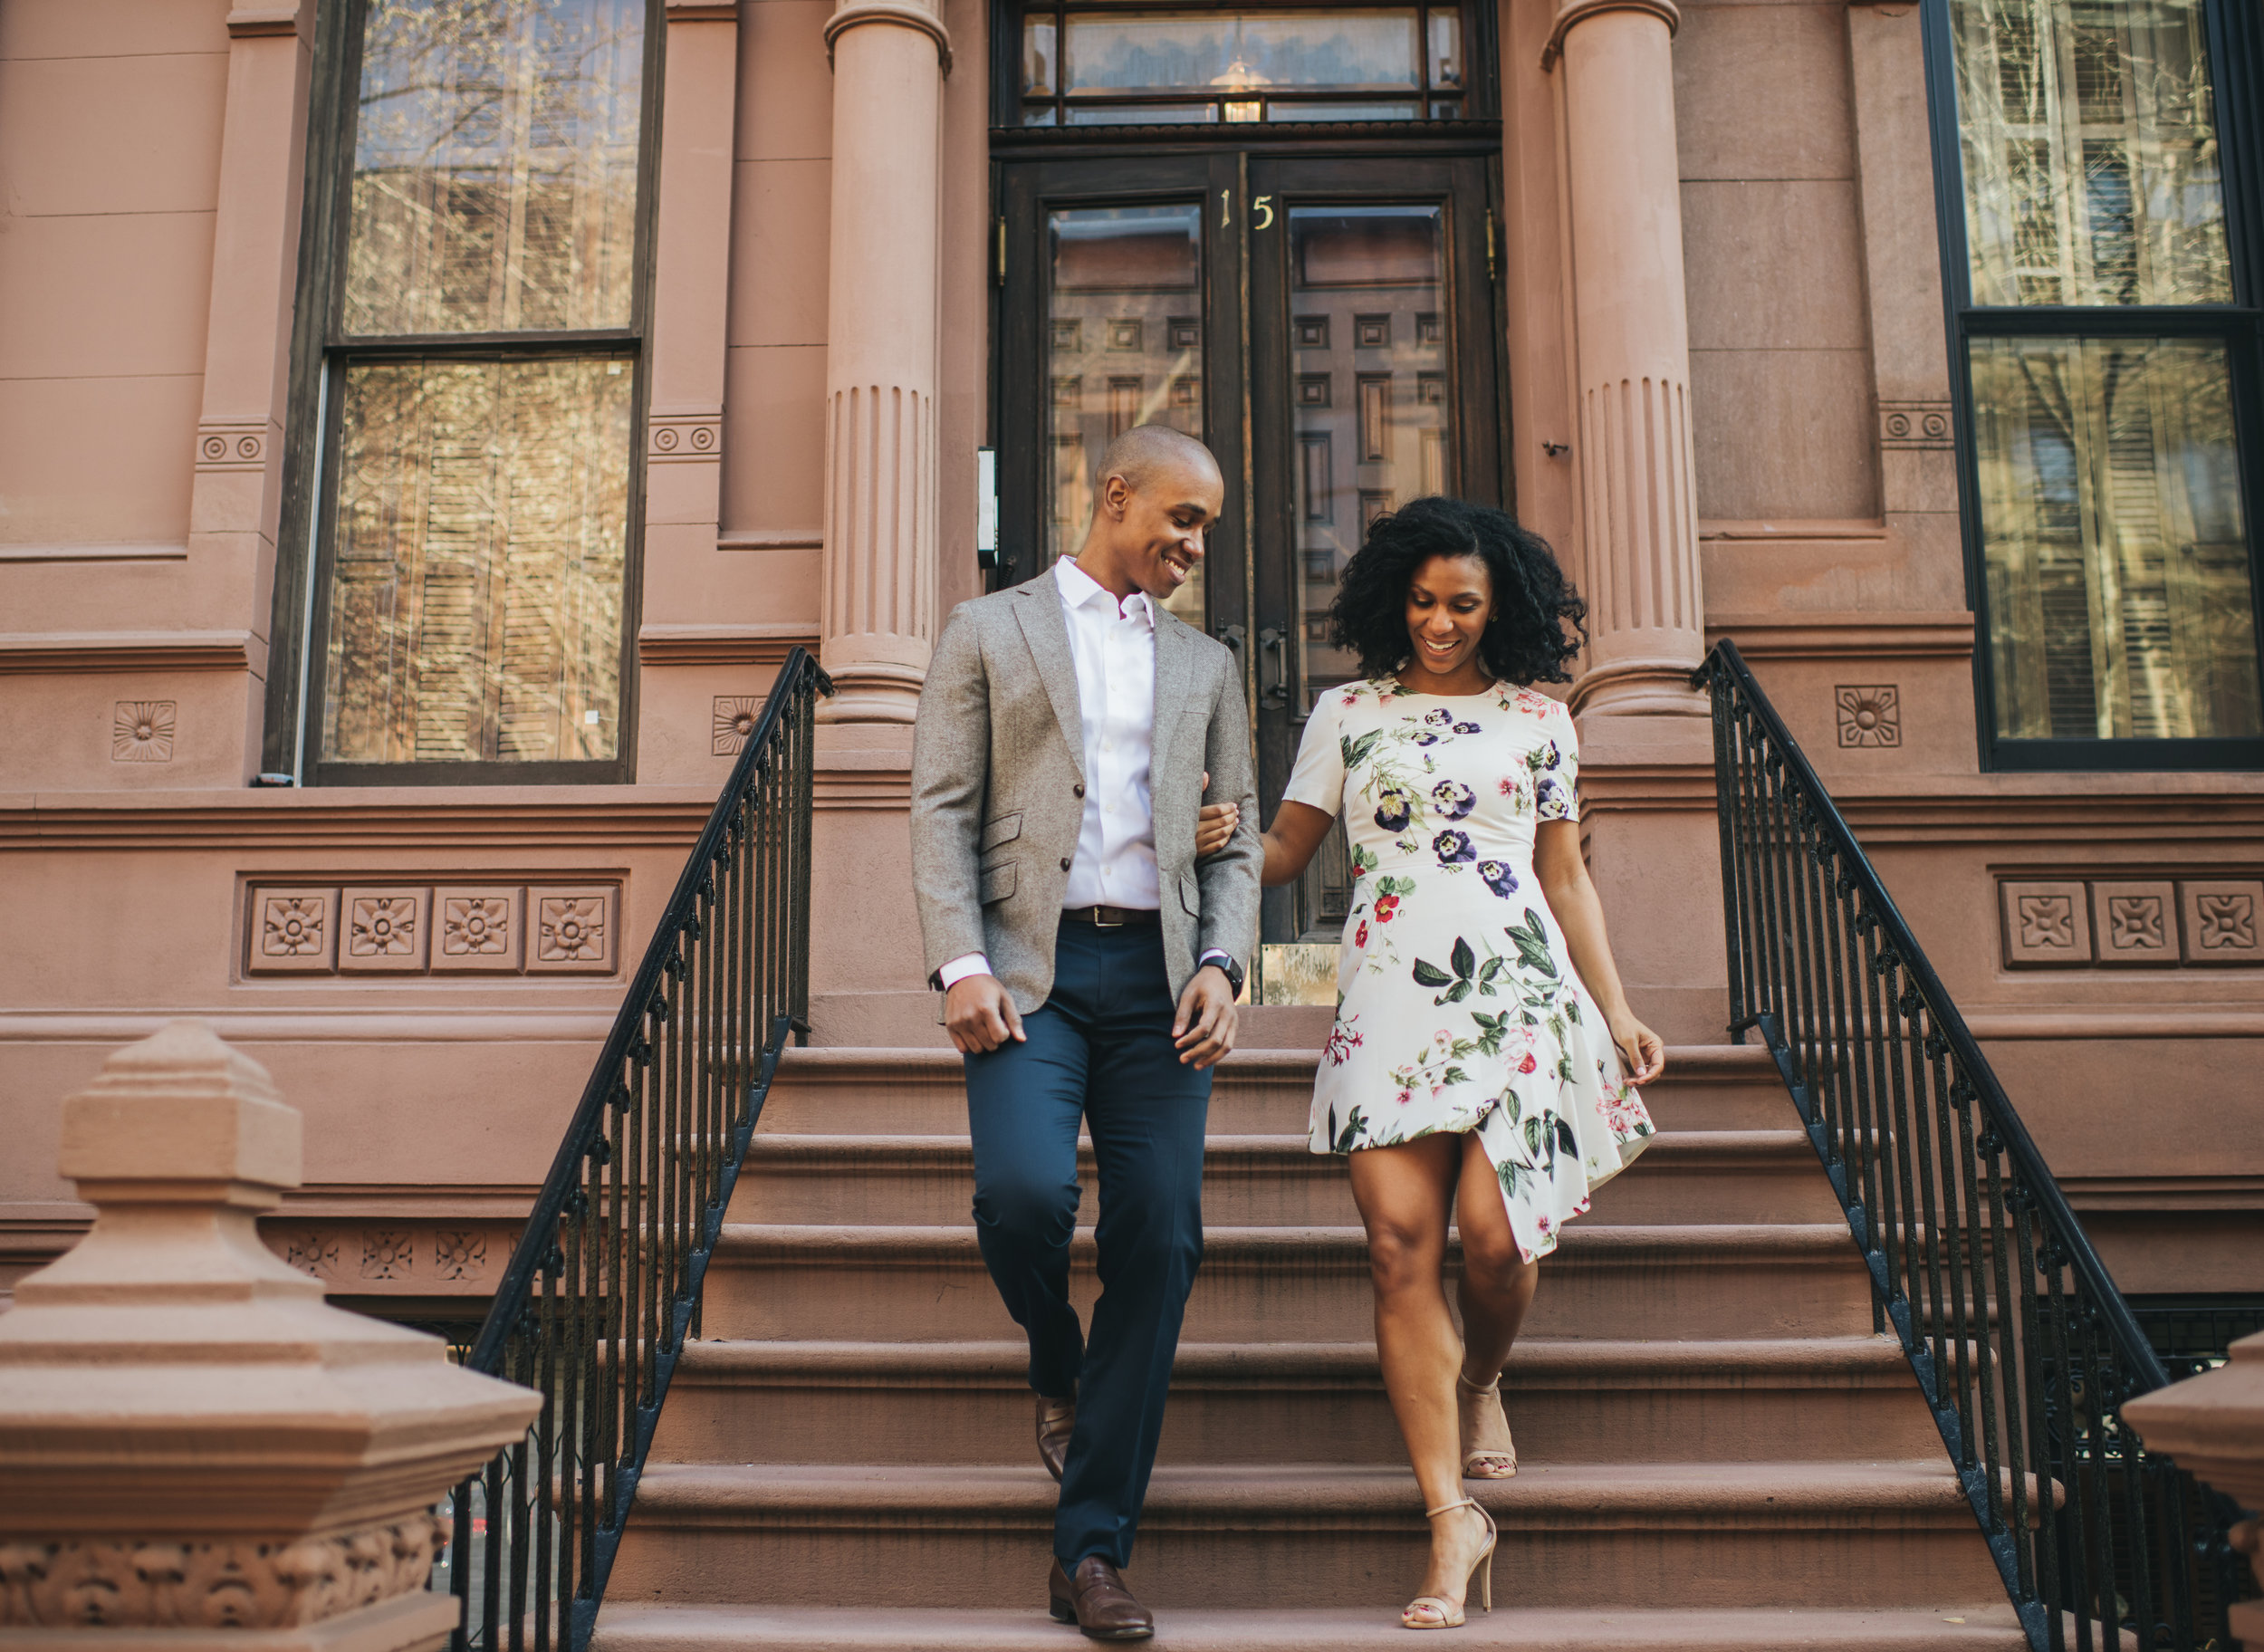 DANIELLE & BRANDON - HARLEM ENGAGEMENT SESSION - TWOTWENTY by CHI-CHI-49.jpg